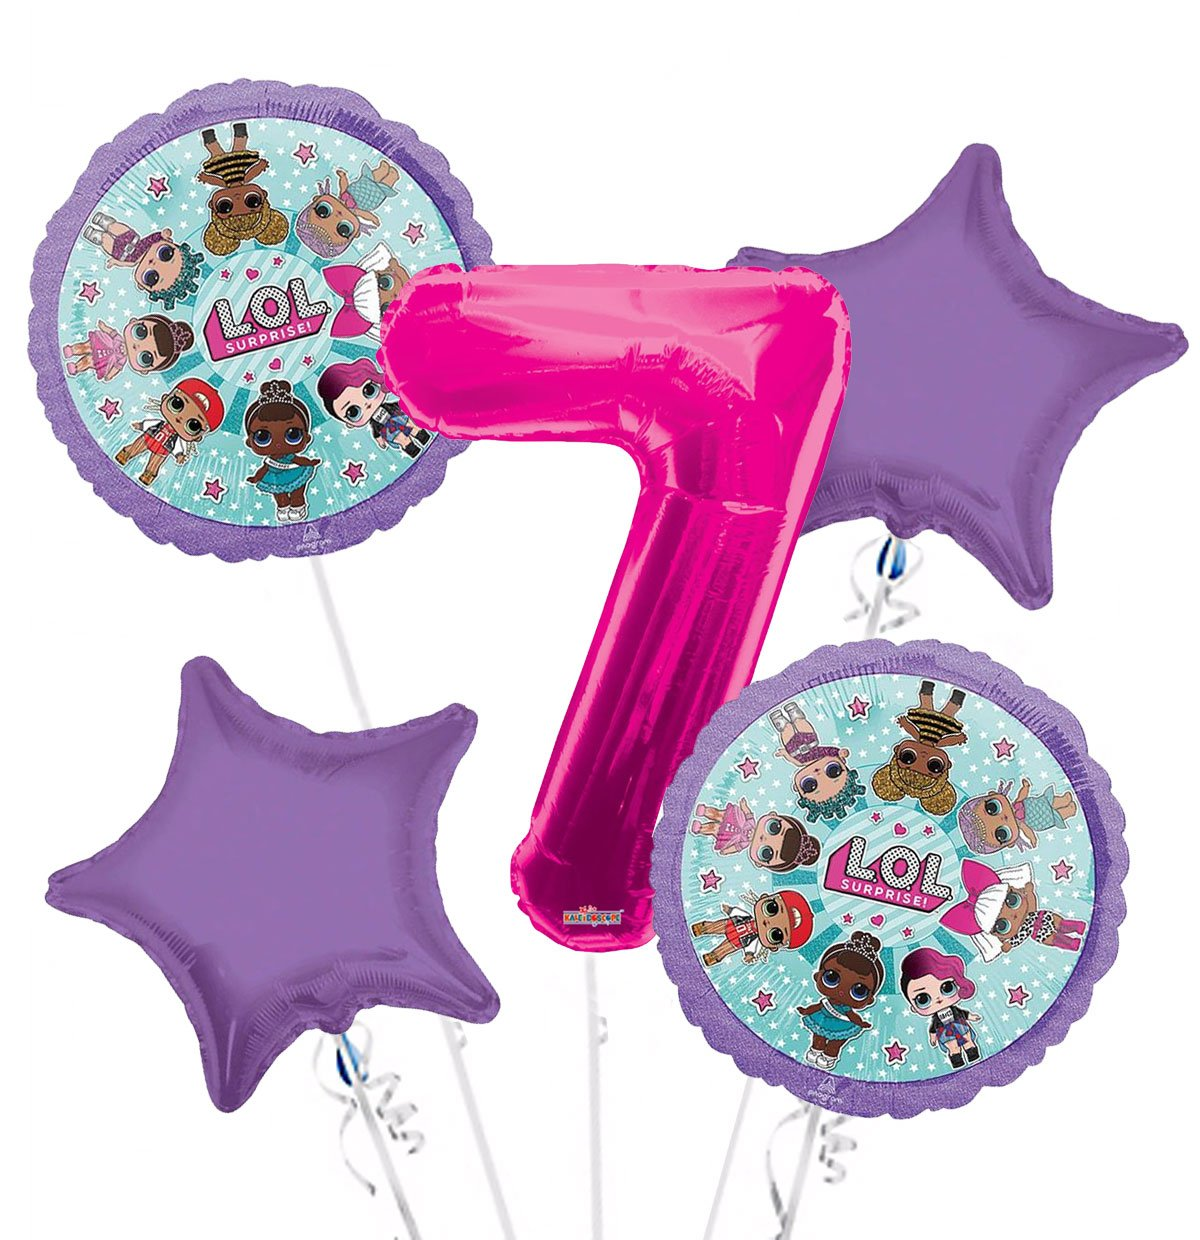 LOL Suprise Balloon Bouquet 7th Birthday 5 pcs - Party Supplies Viva Party